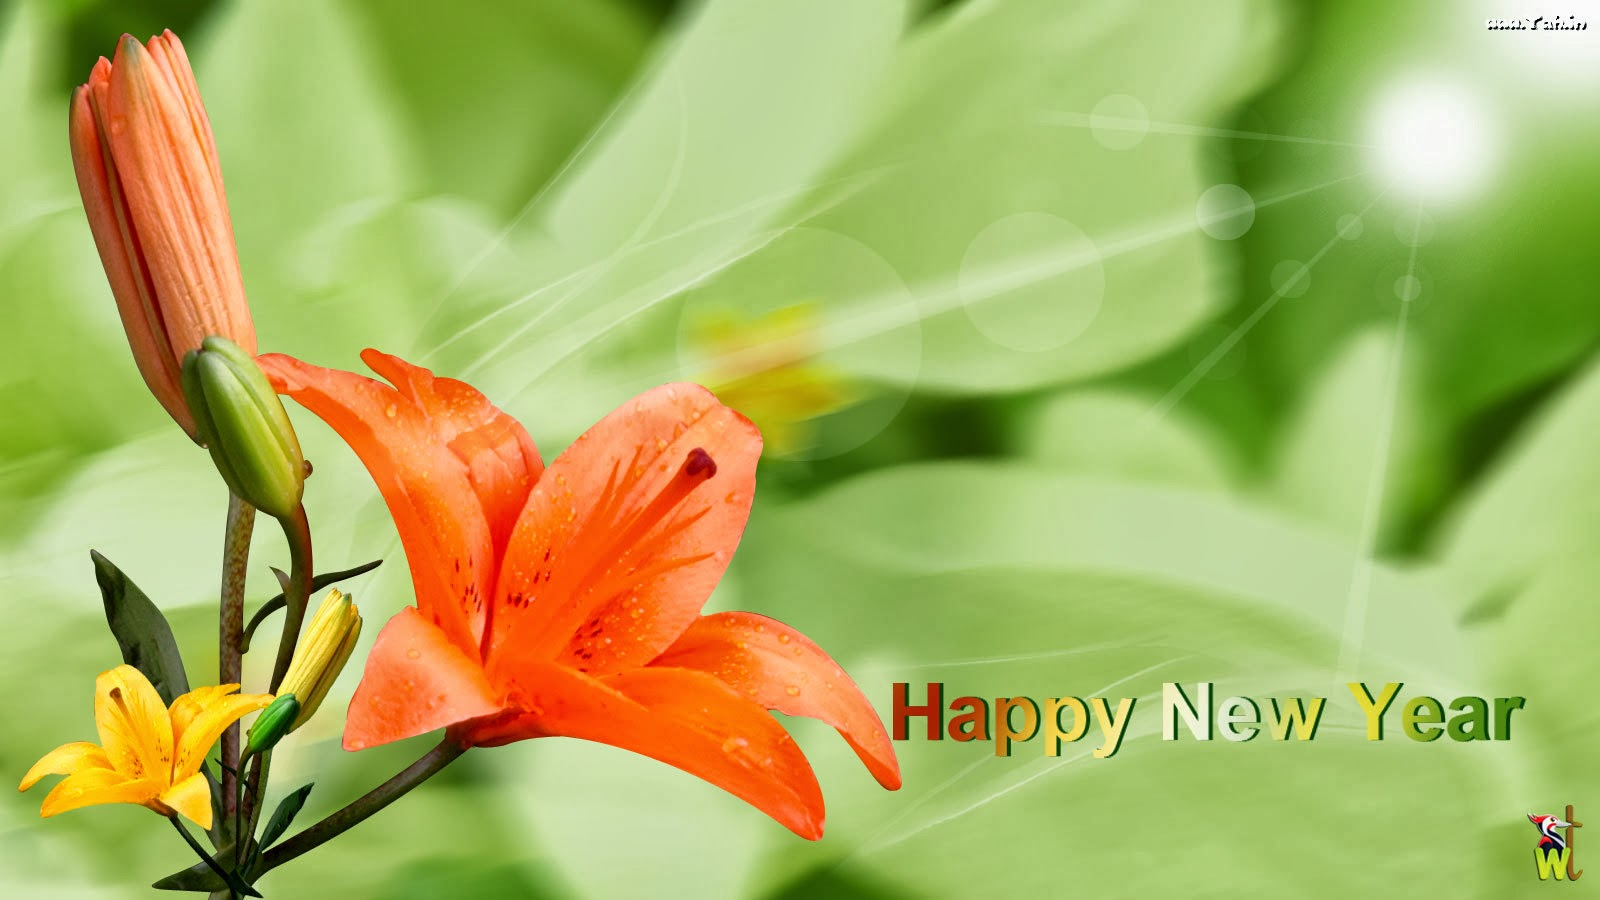 New Year Flower Gifts  Flowers Wishes Wallpapers for New Year 2014     New Year Flower Gifts  Flowers Wishes Wallpapers for New Year 2014